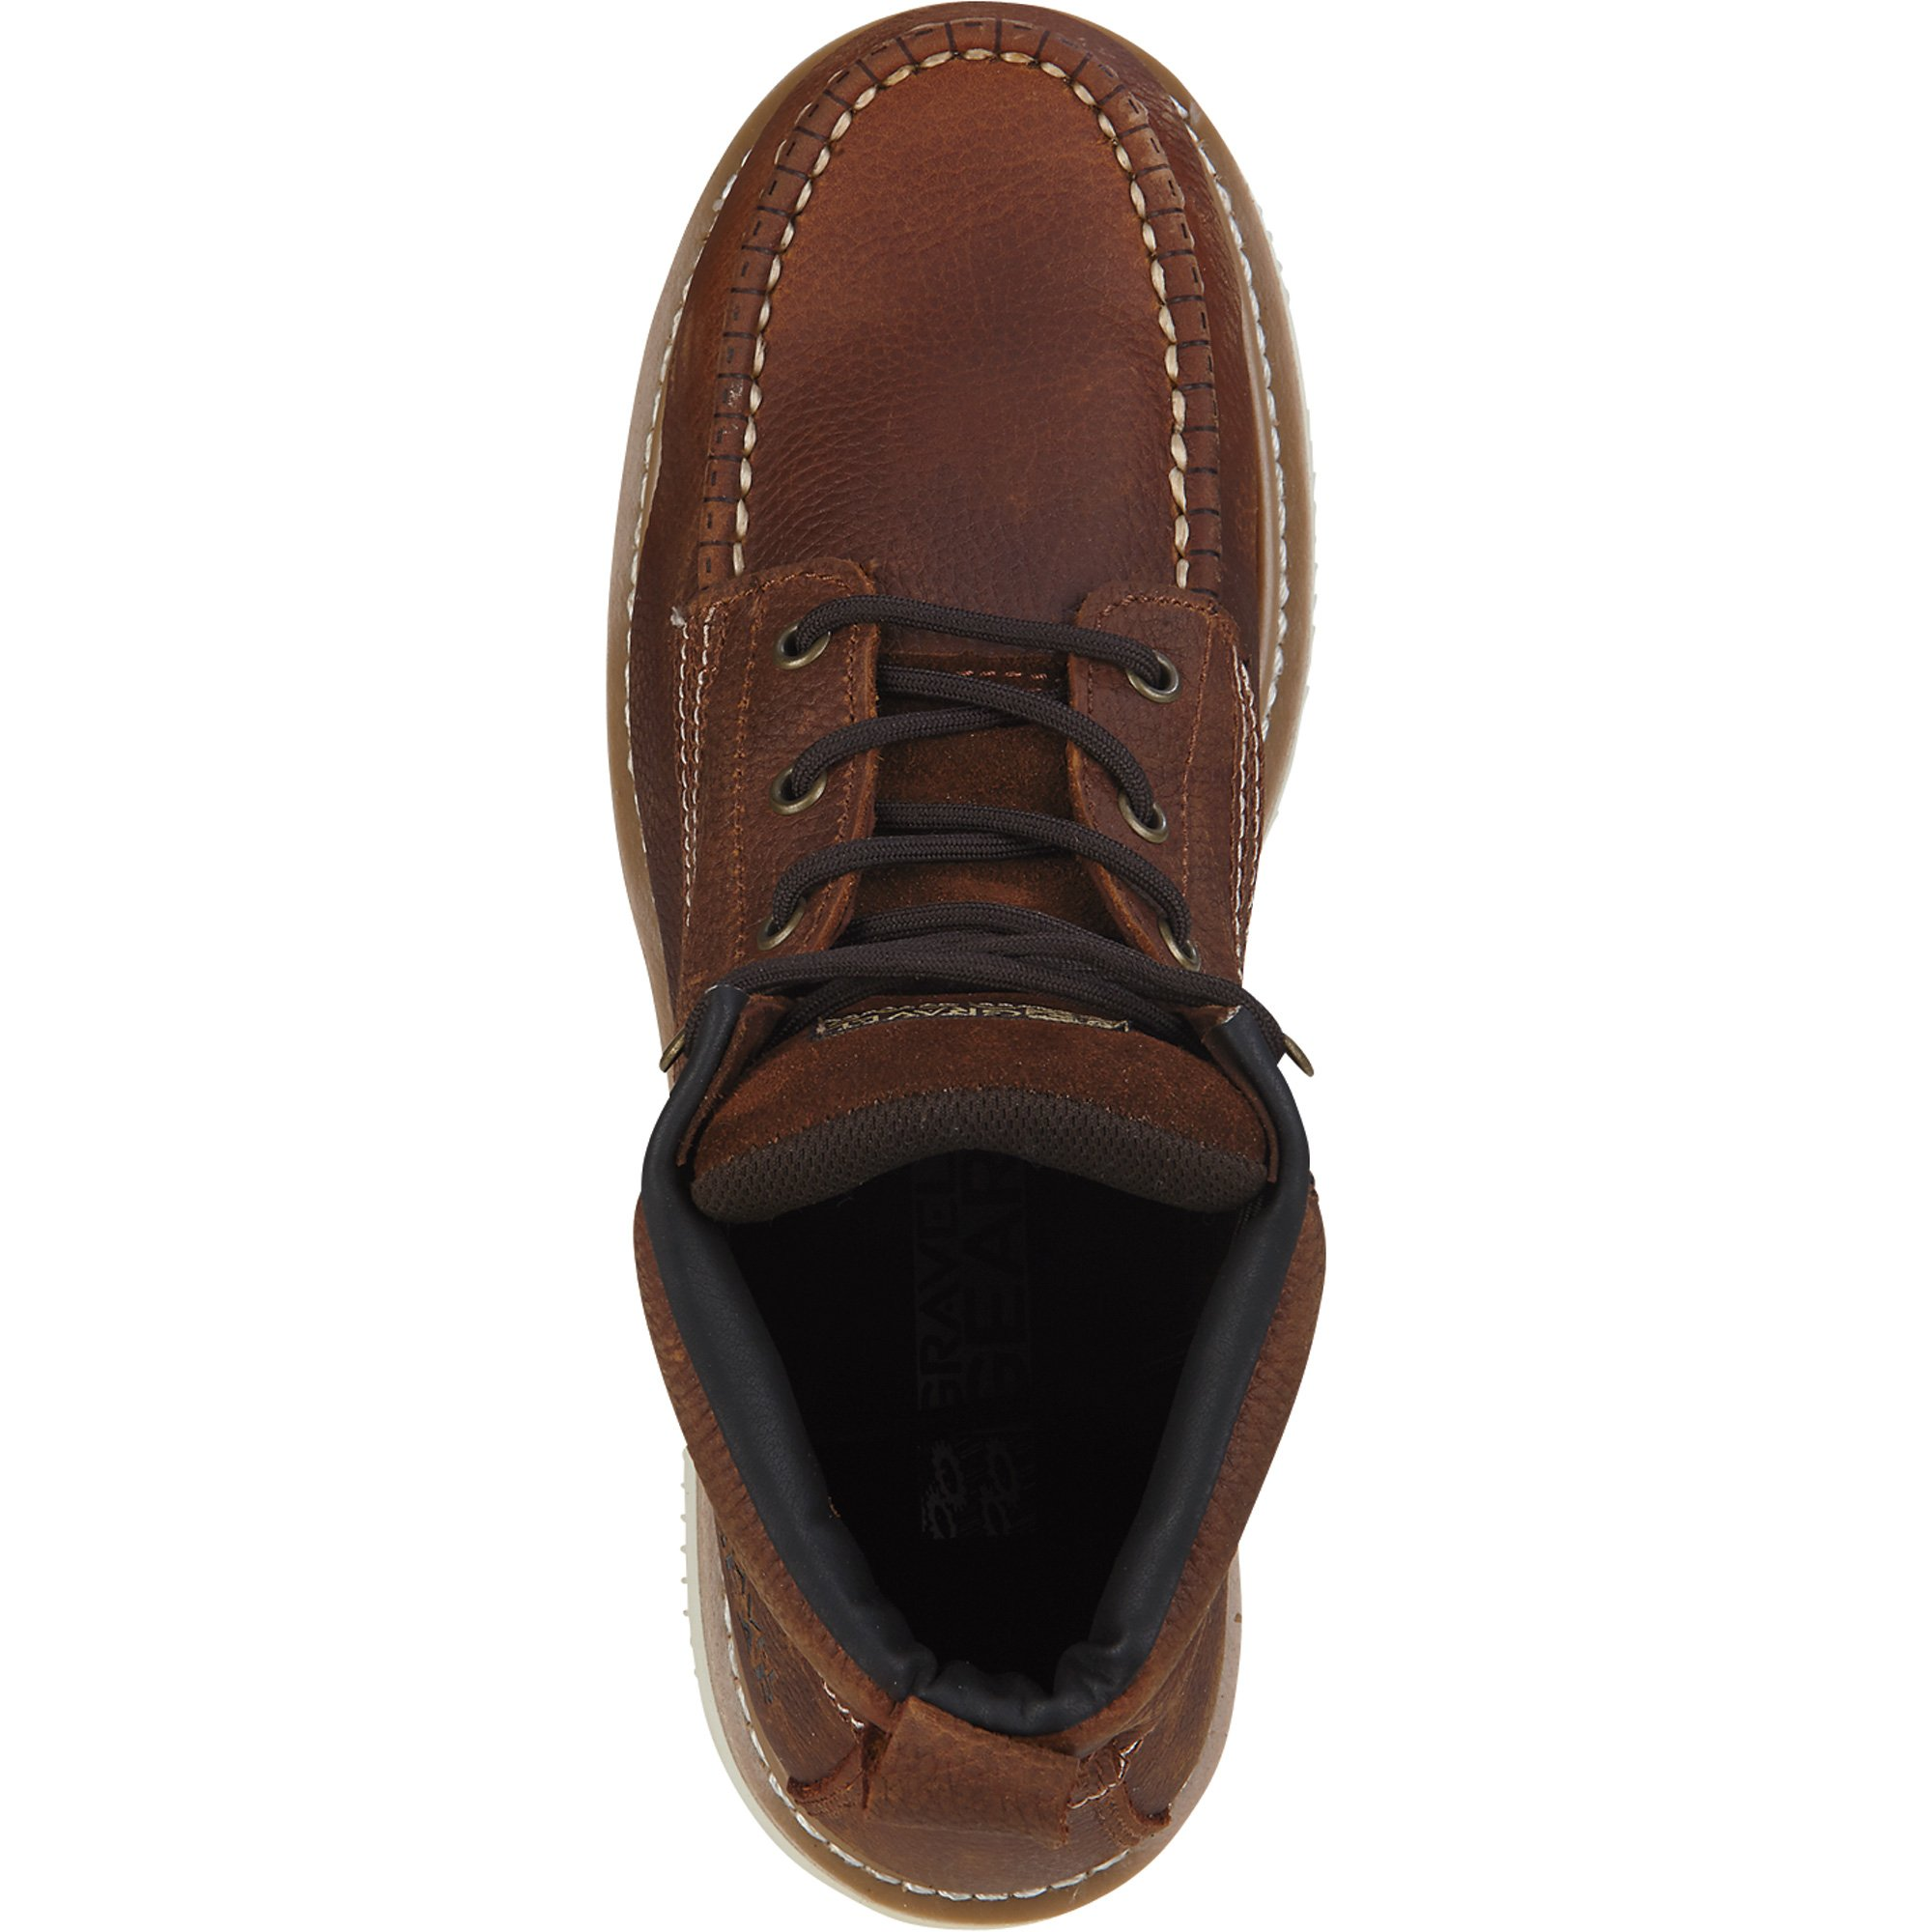 Gravel Gear 6in. Moc Toe Wedge Boot (10.5) by Gravel Gear (Image #7)